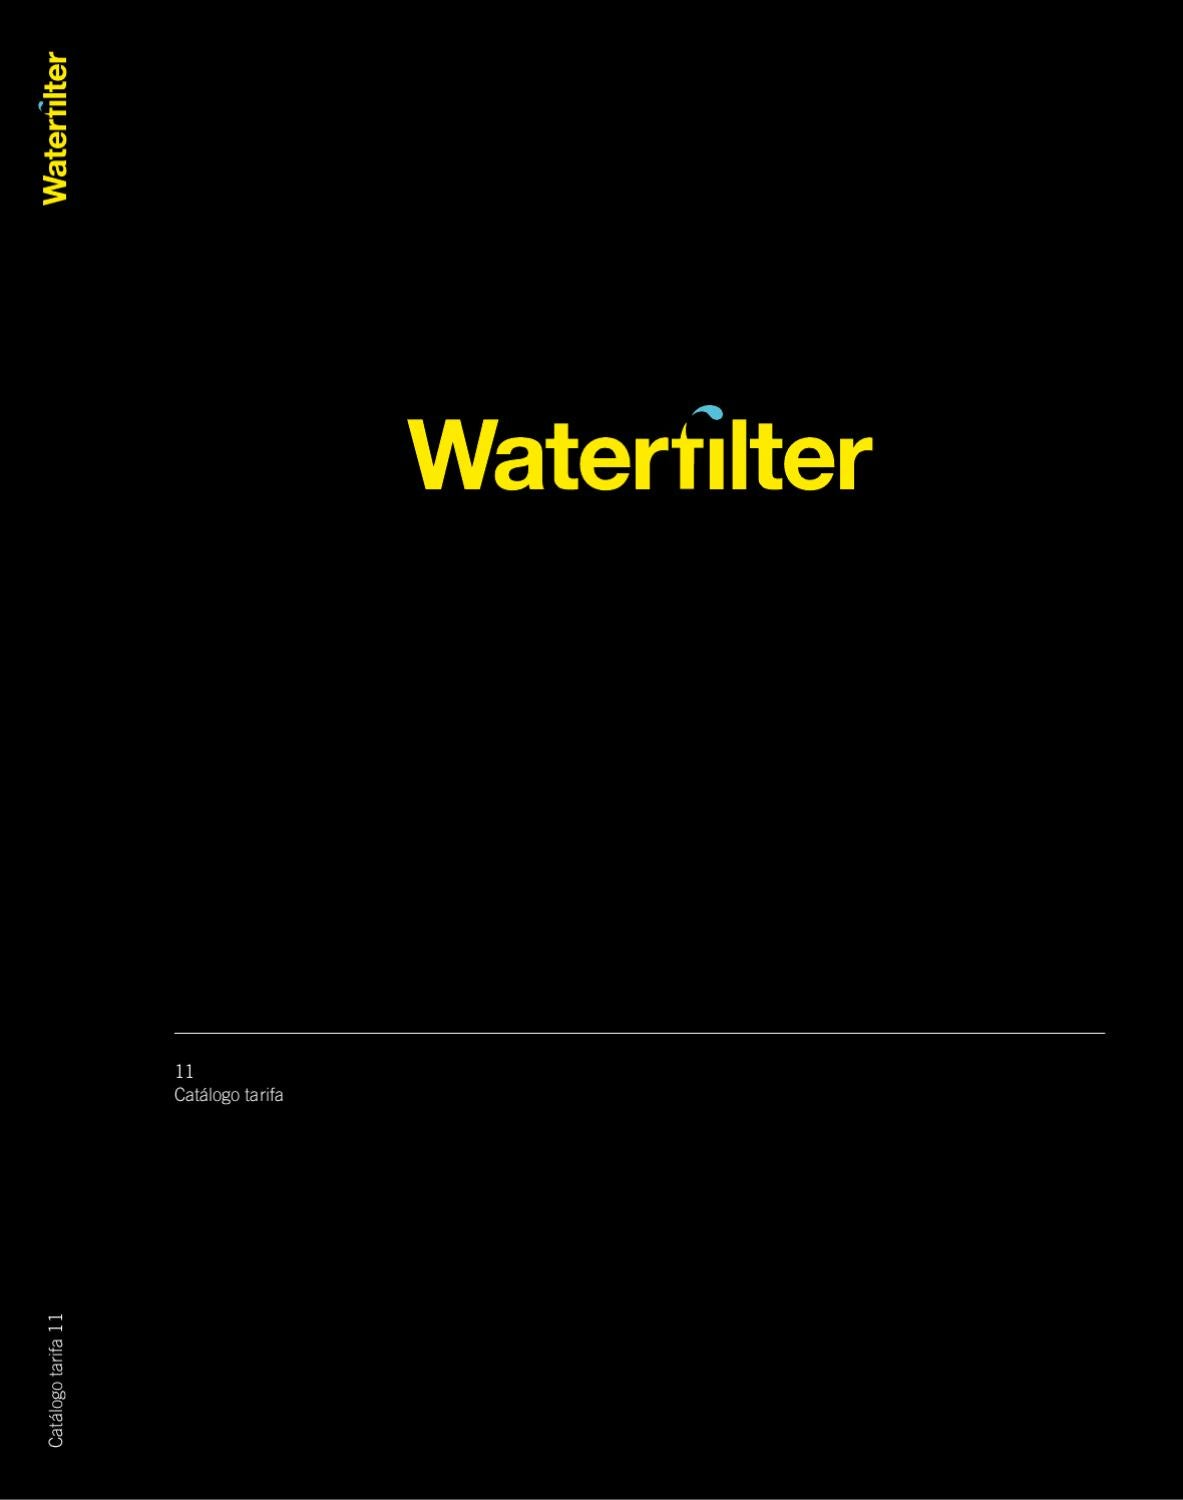 waterfilter 2011 by Suministros Dominguez - issuu